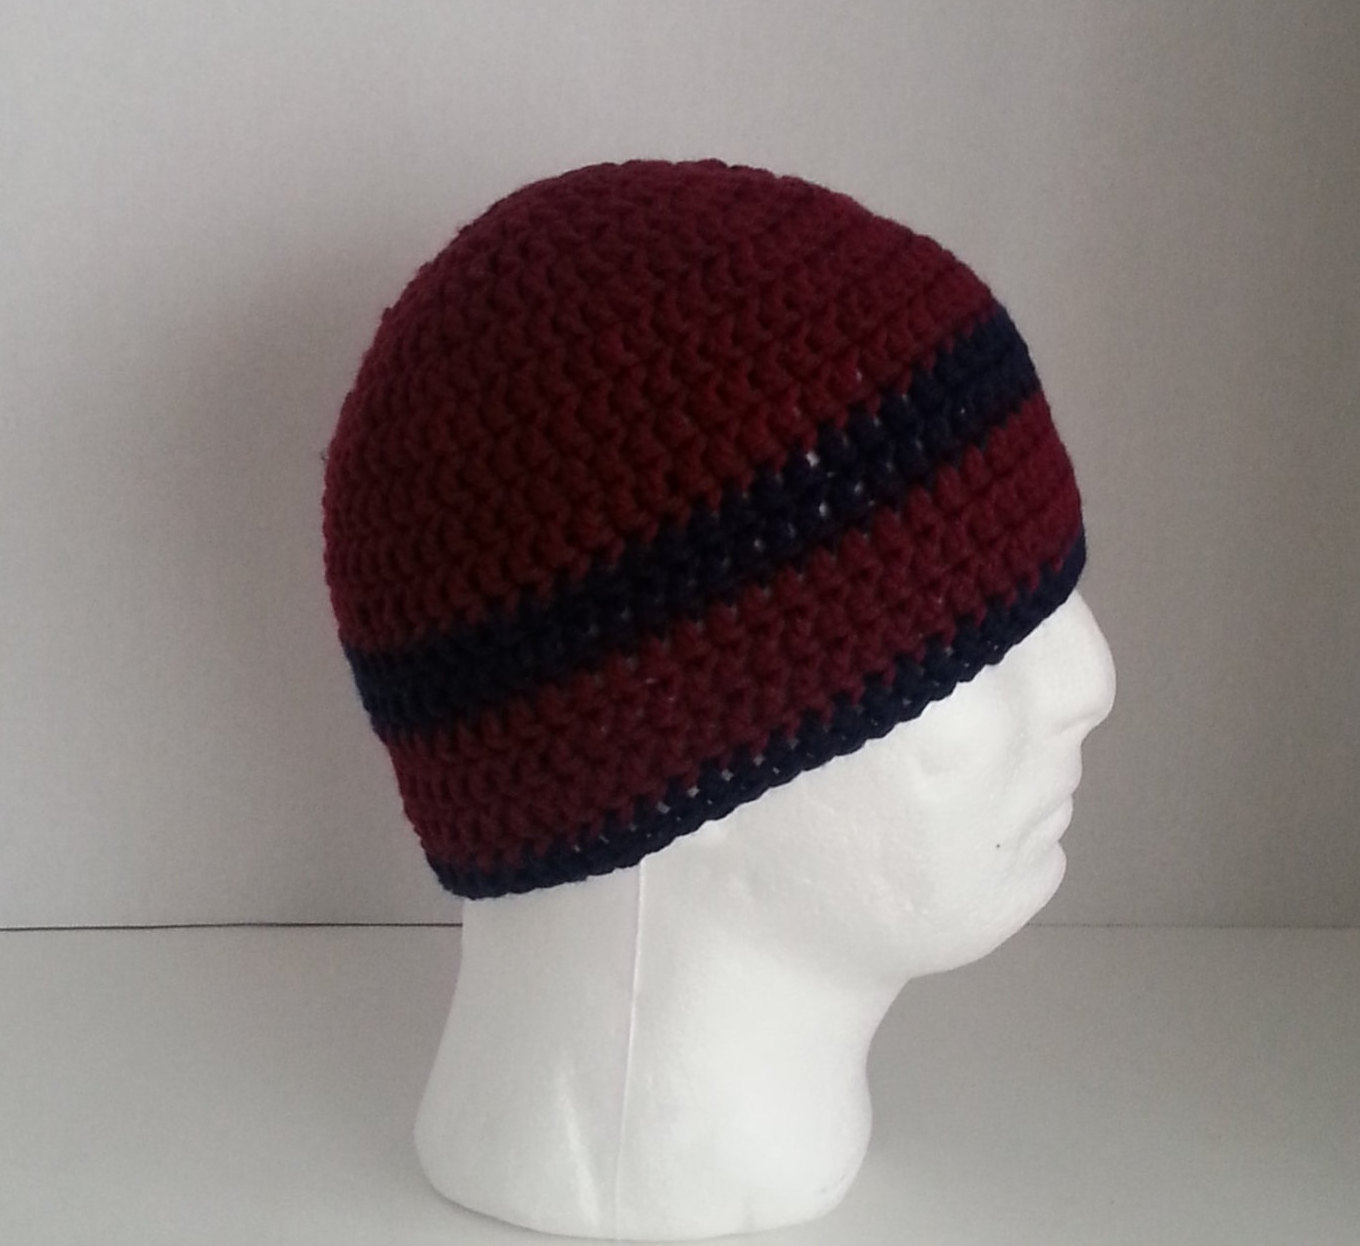 Crochet Beanies For Men Mens Crochet Beanie Mens Crochet Hat Two Toned Maroon Etsy